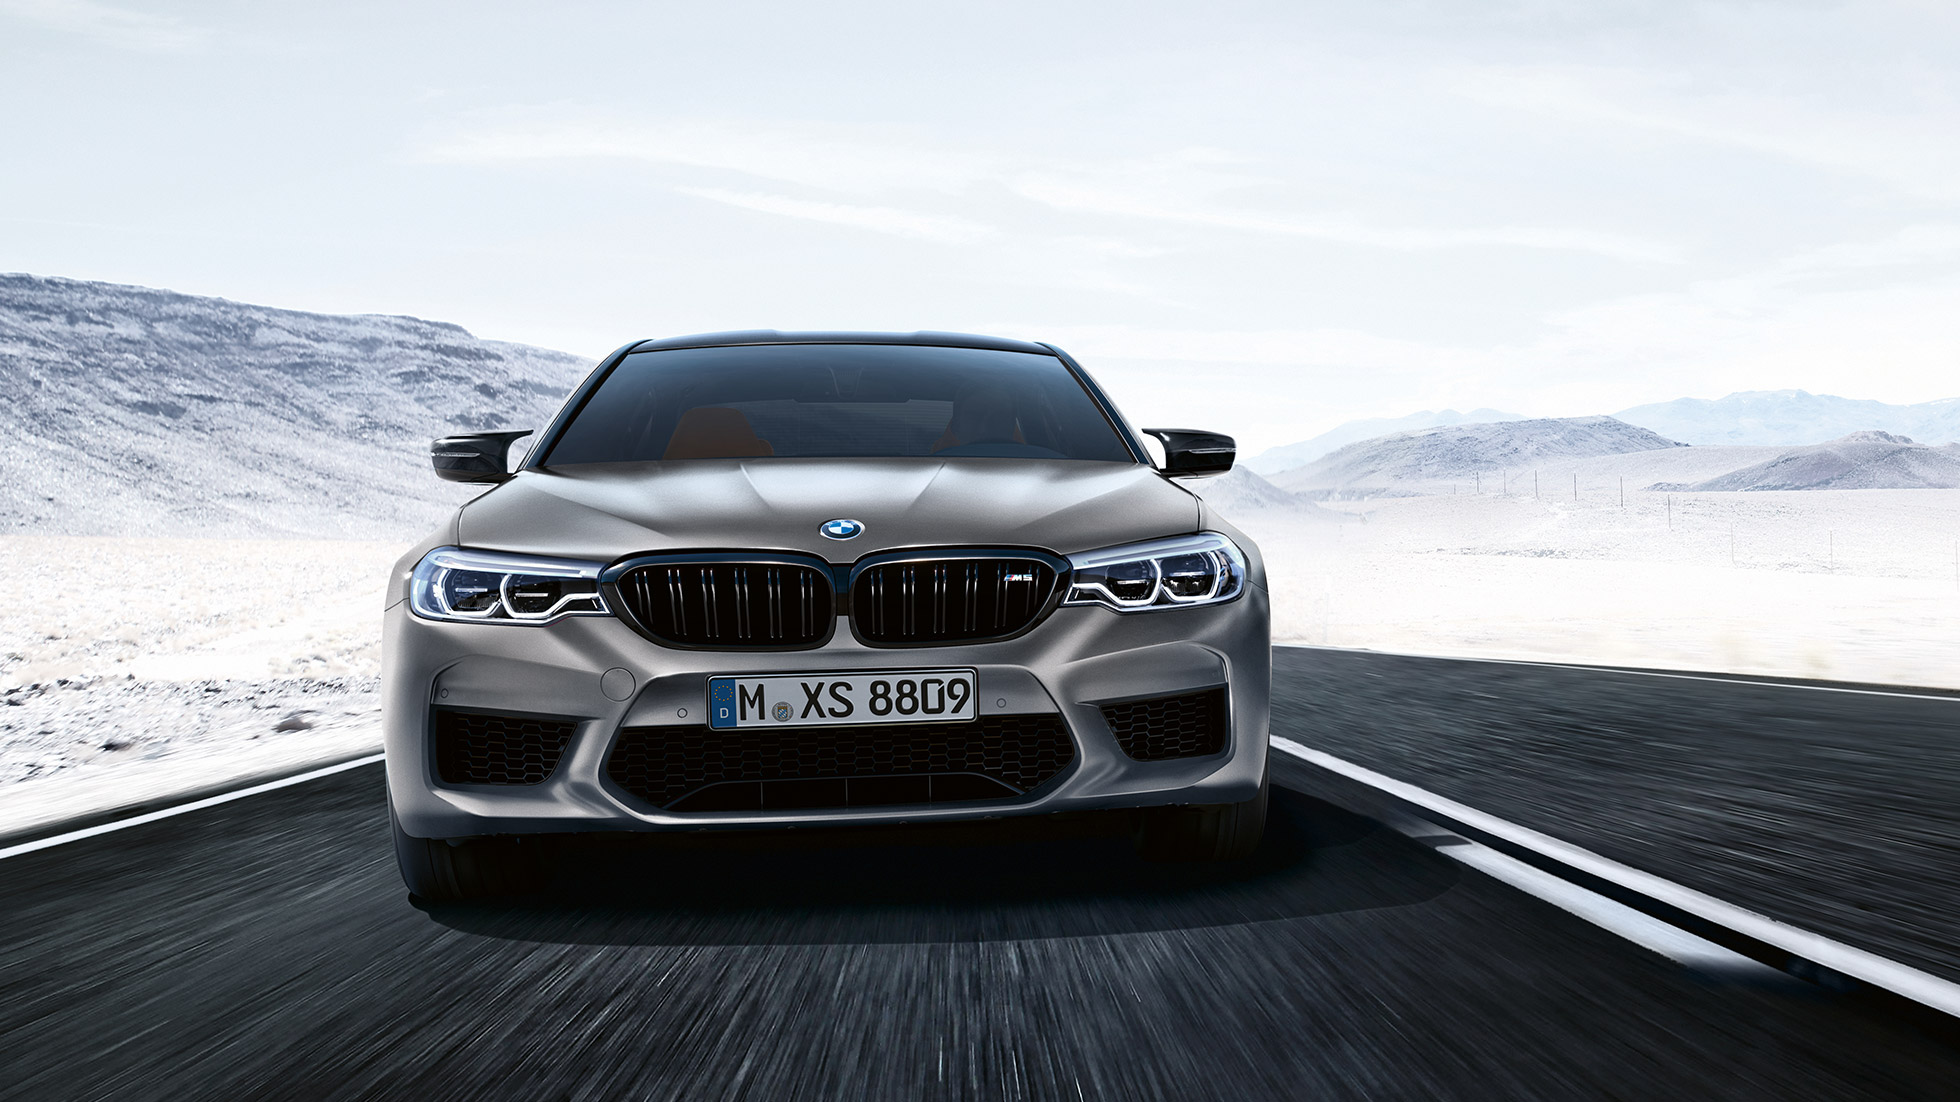 BMW M5 Competition design front shot.